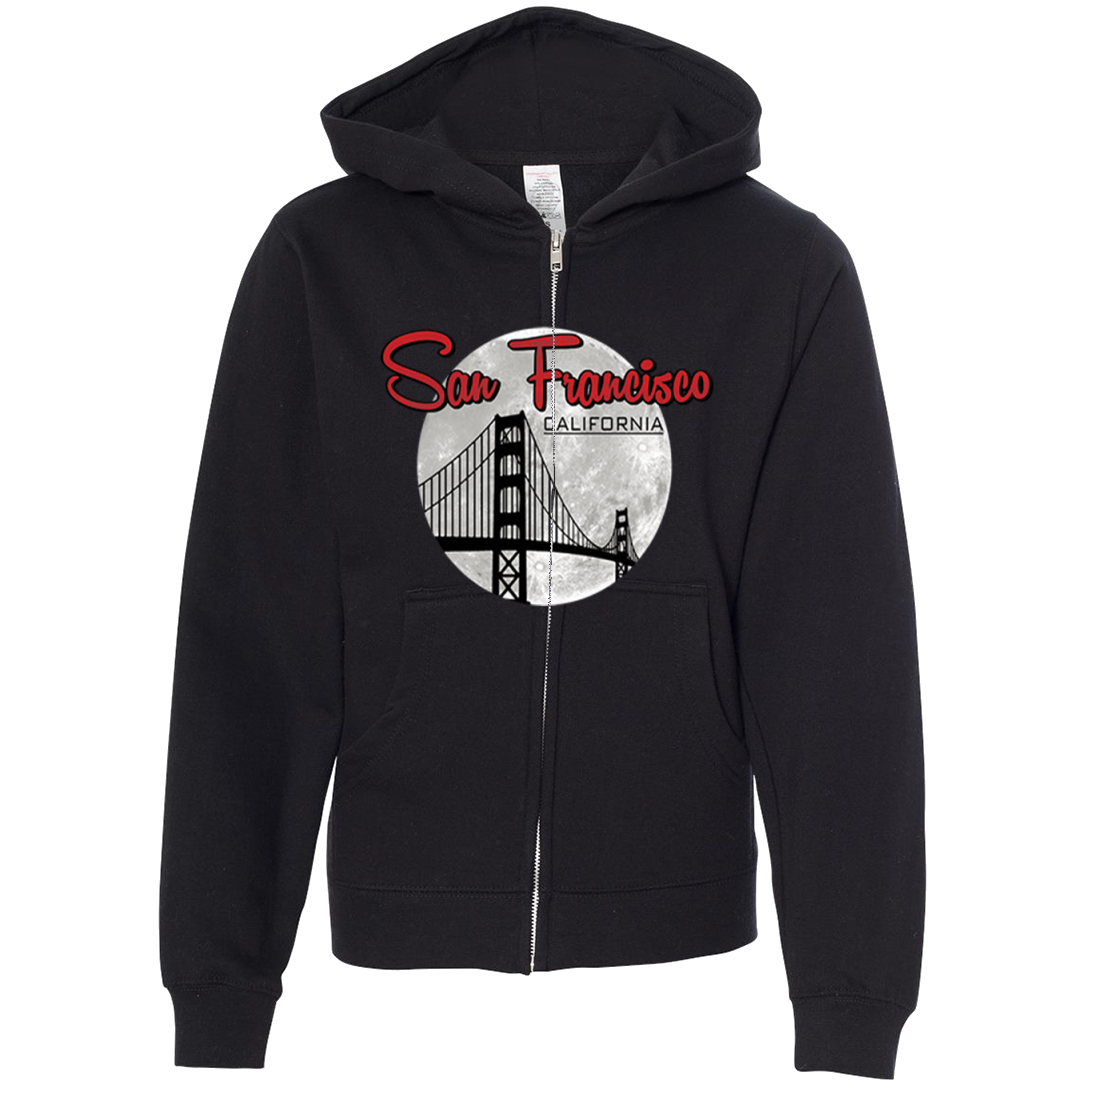 San Francisco California Moon Premium Youth Zip-Up Hoodie